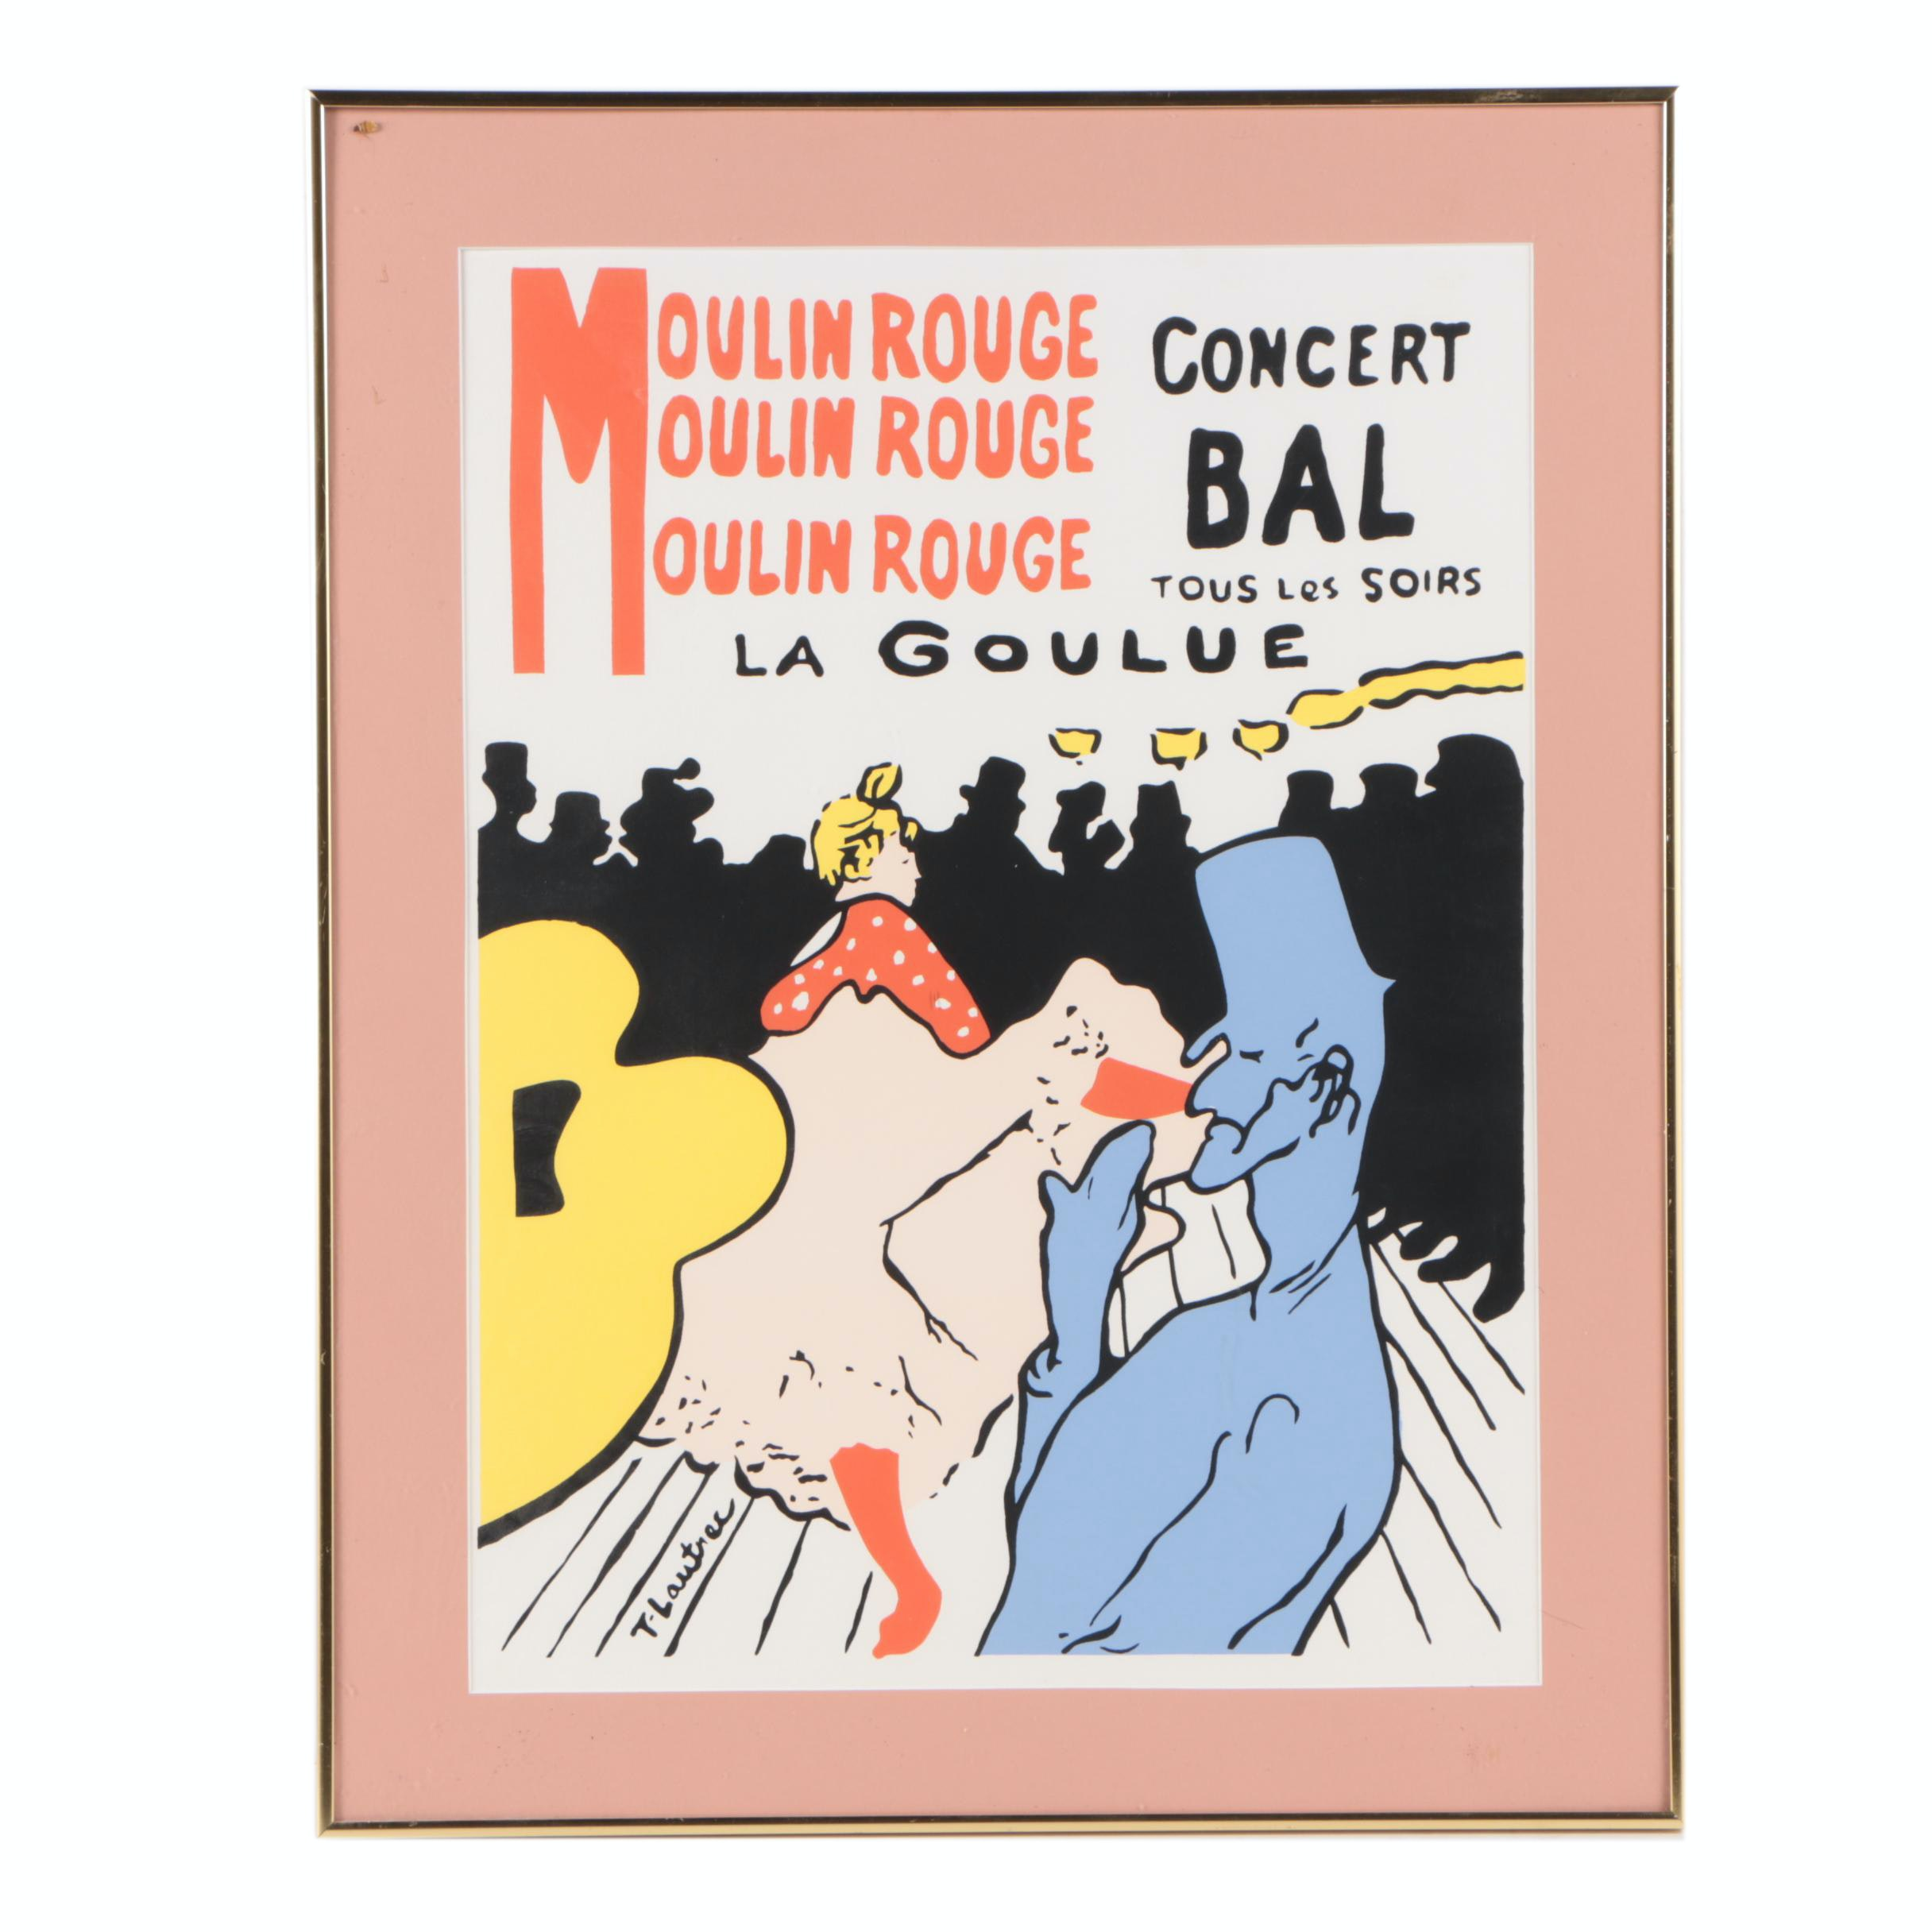 Serigraph After Toulouse-Lautrec Poster for Moulin Rouge